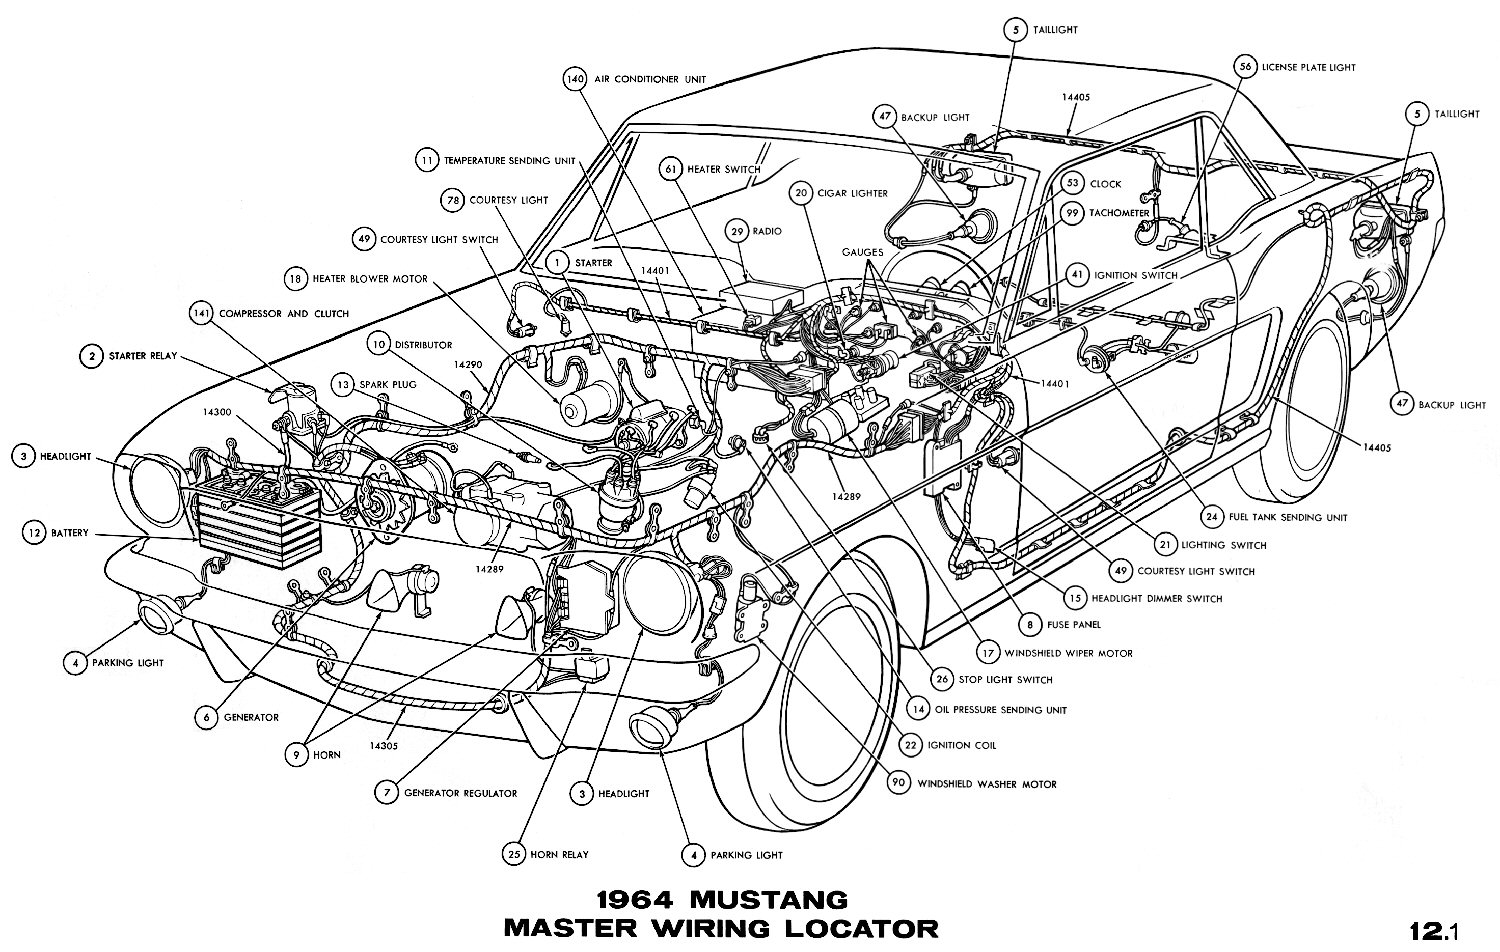 1964 Mustang Wiring Diagrams on bronco alternator wiring